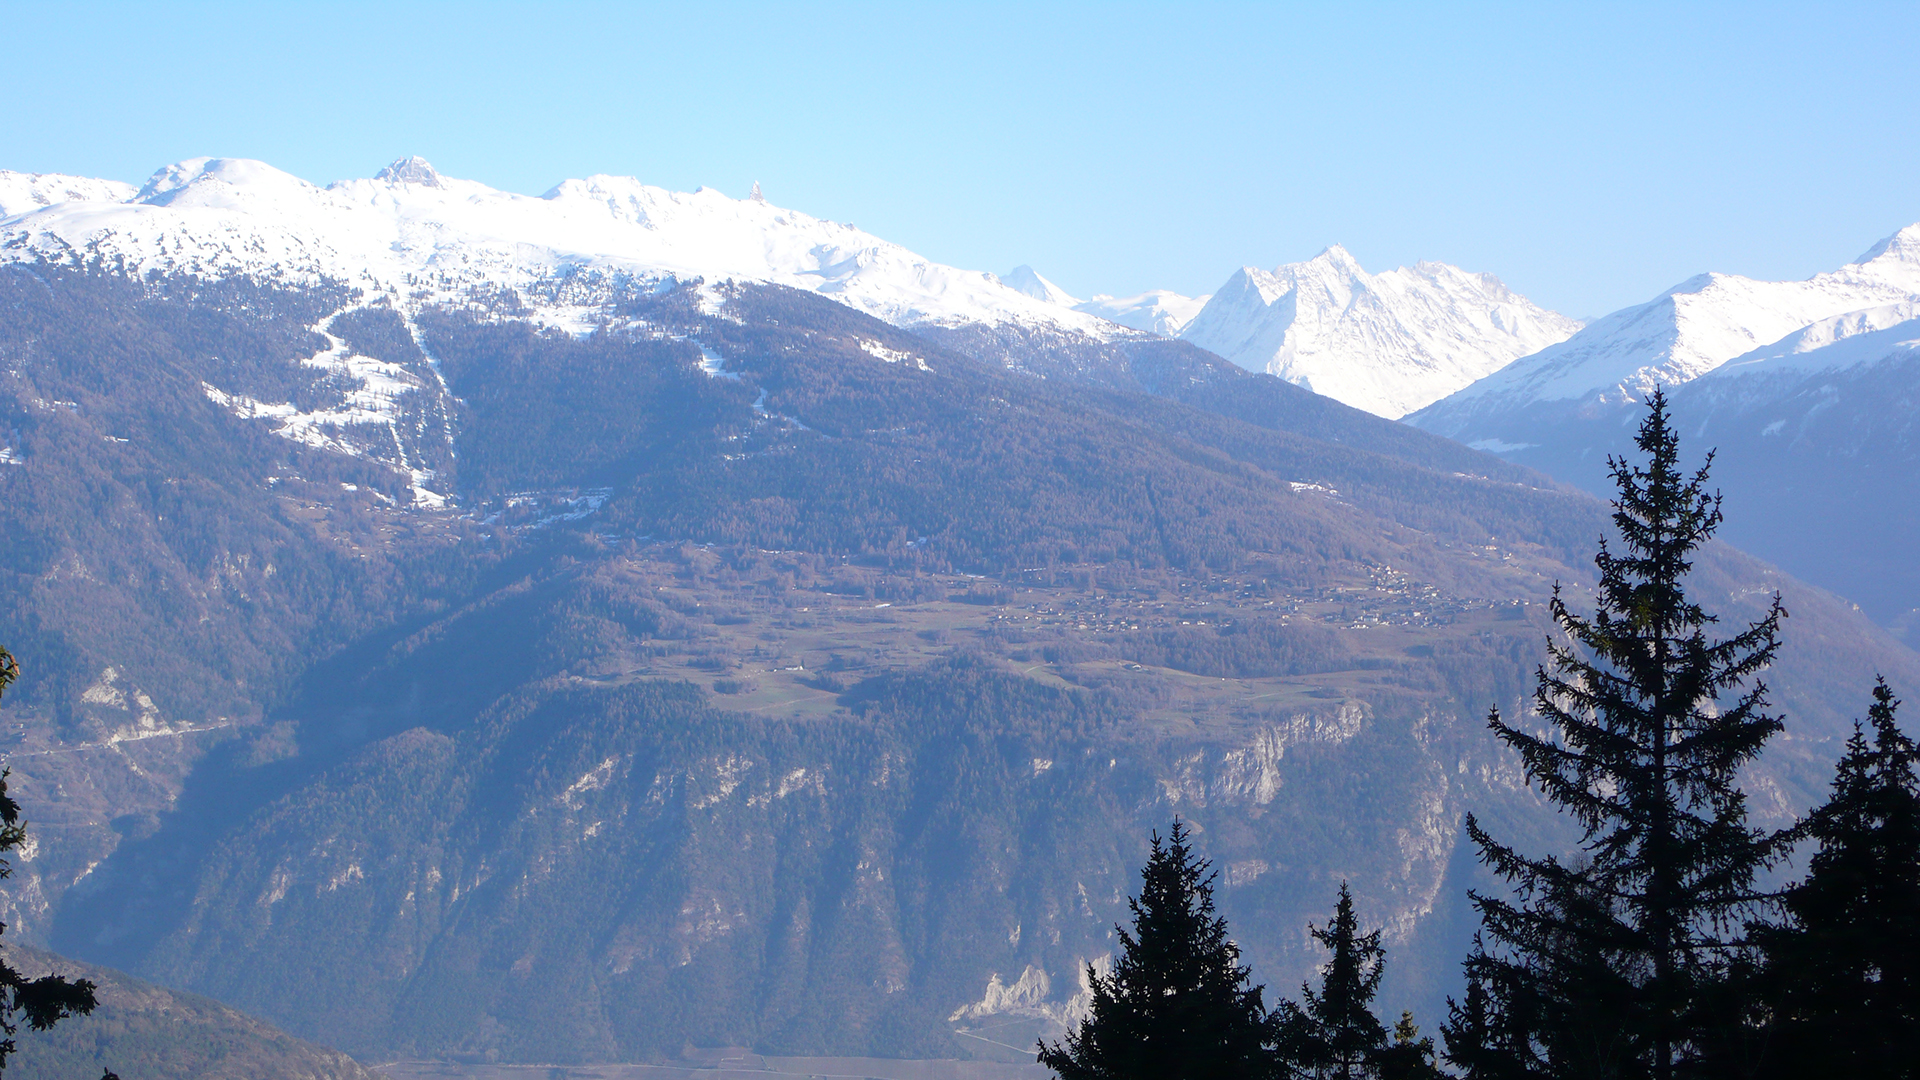 View-of-Nax-from-the-other-side-of-the-Rhone-Valley